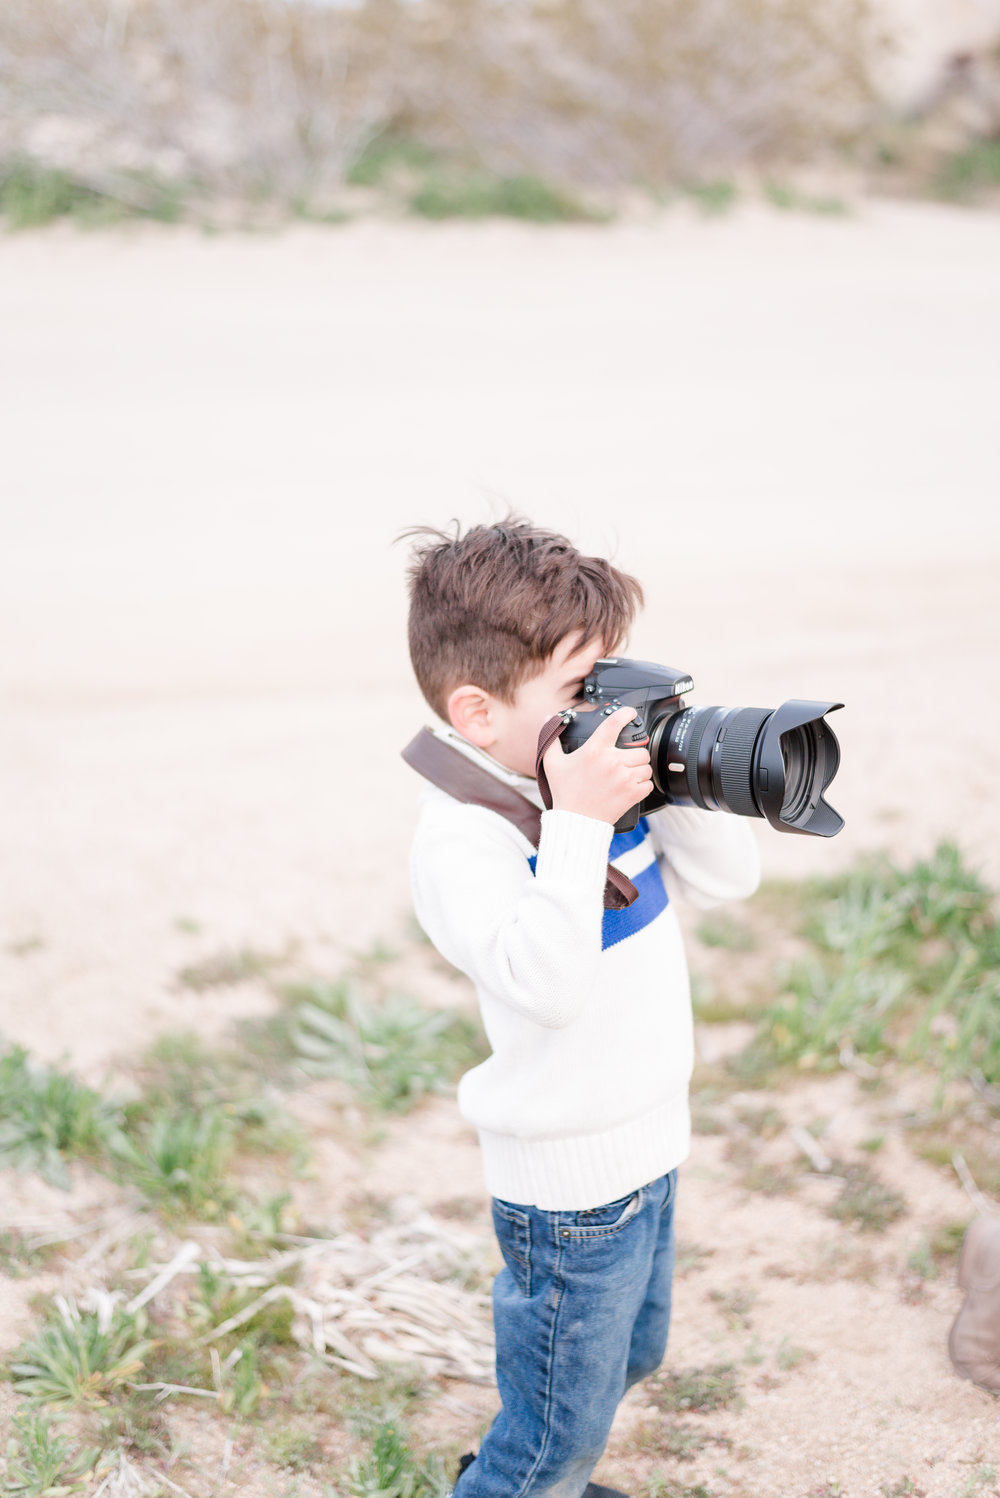 Mentoring - Are you an ambitious Photographer or entrepreneur eager to learn more about Photography and business but don't know where to start? Check this out!